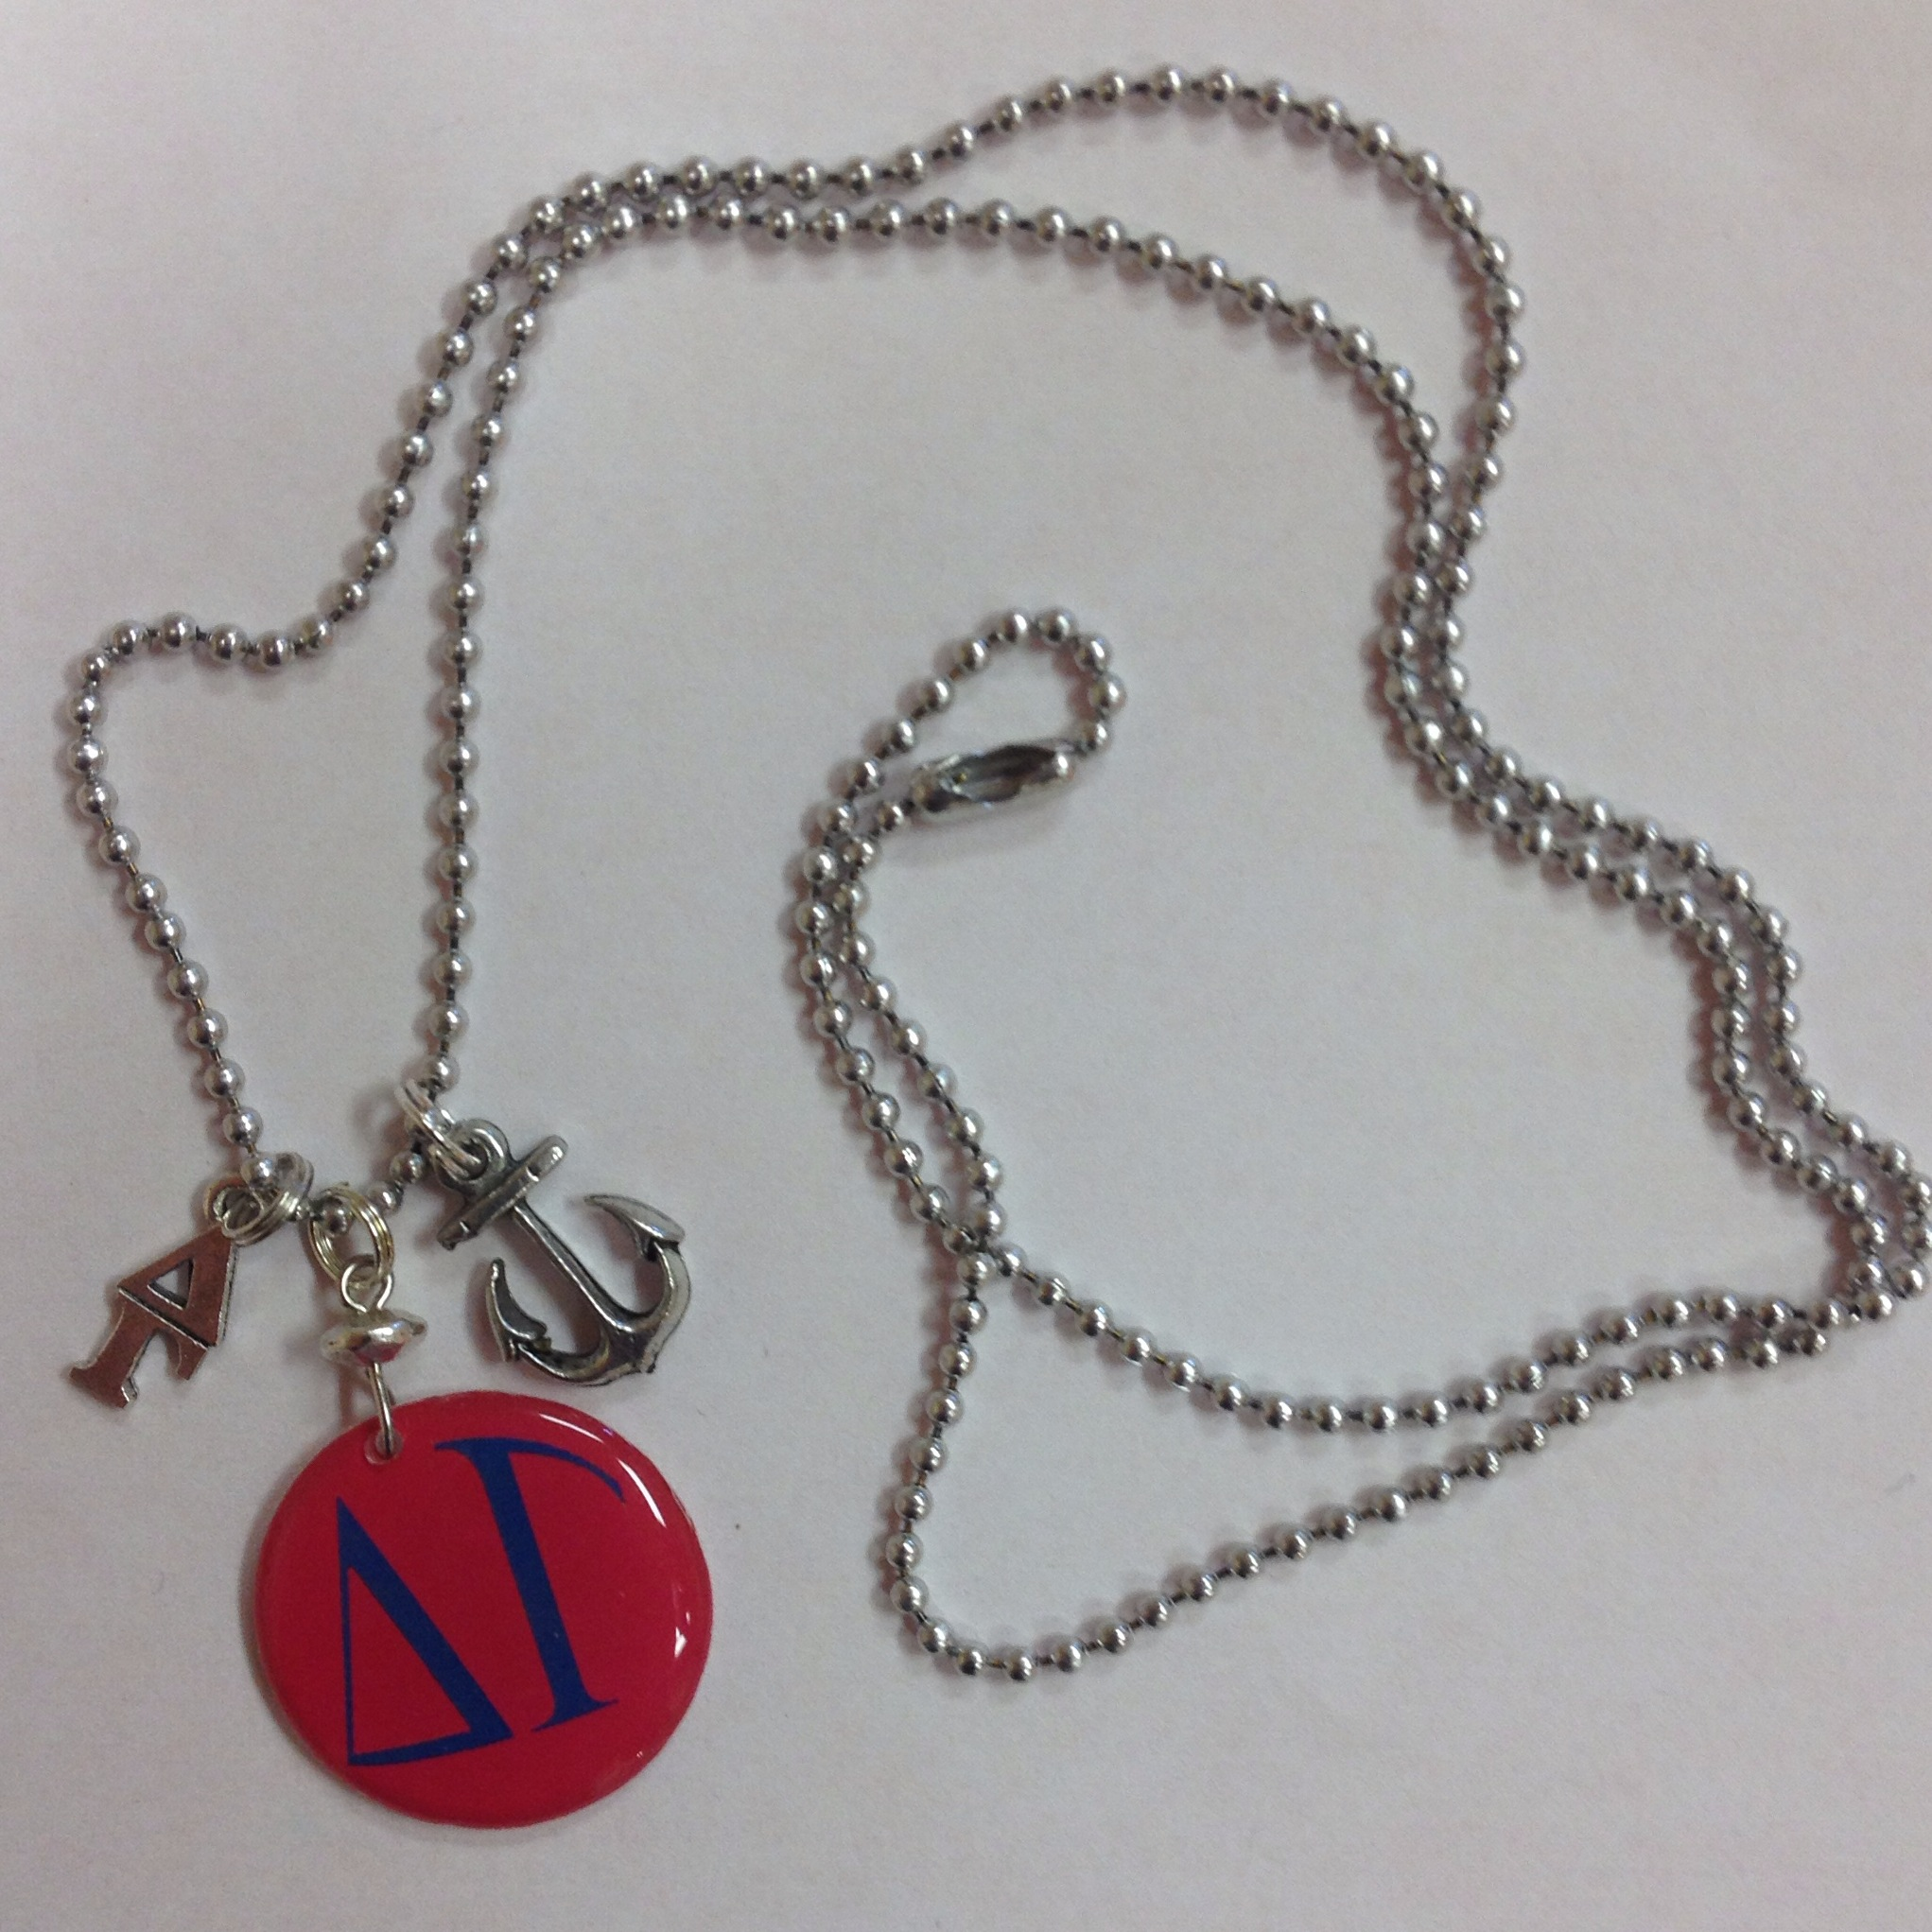 8c4b56eee5e5b Delta Gamma Sorority Greek Charm Necklace - lavaliere, anchor mascot charm,  & handpoured pendant cluster on a 24 inch bead chain